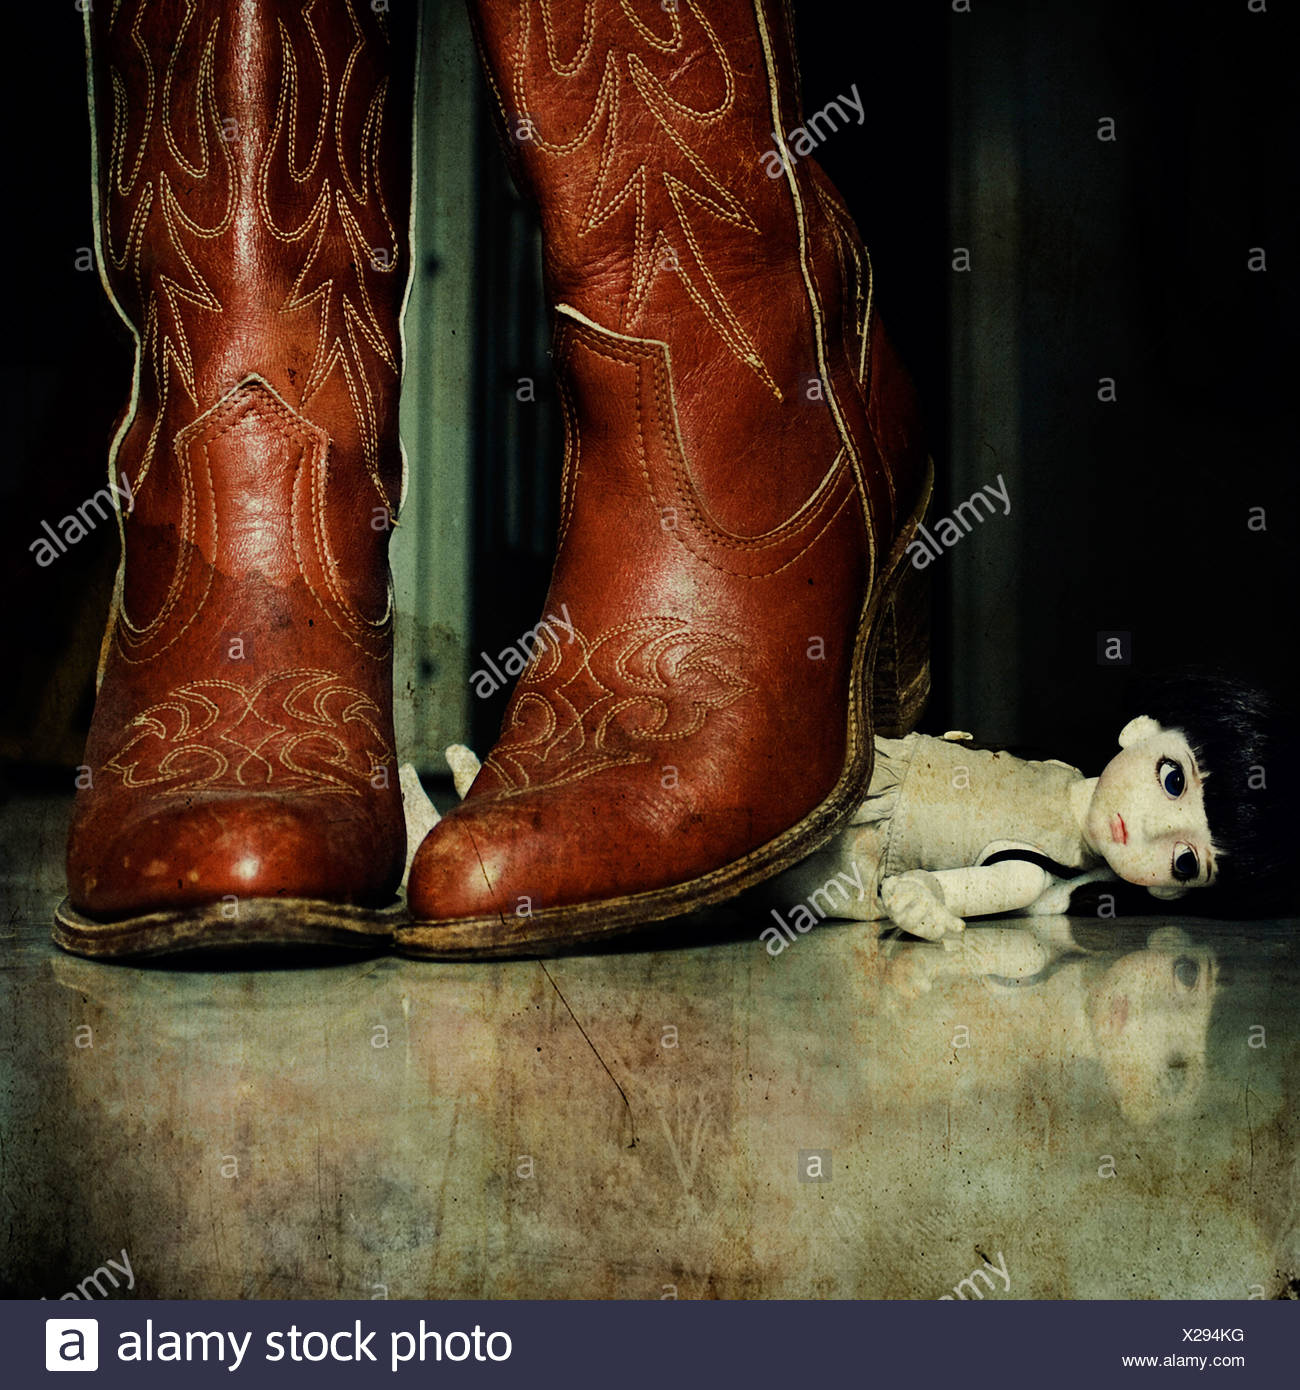 cc0056ca0e1 Cowgirl Boots Stock Photos & Cowgirl Boots Stock Images - Alamy